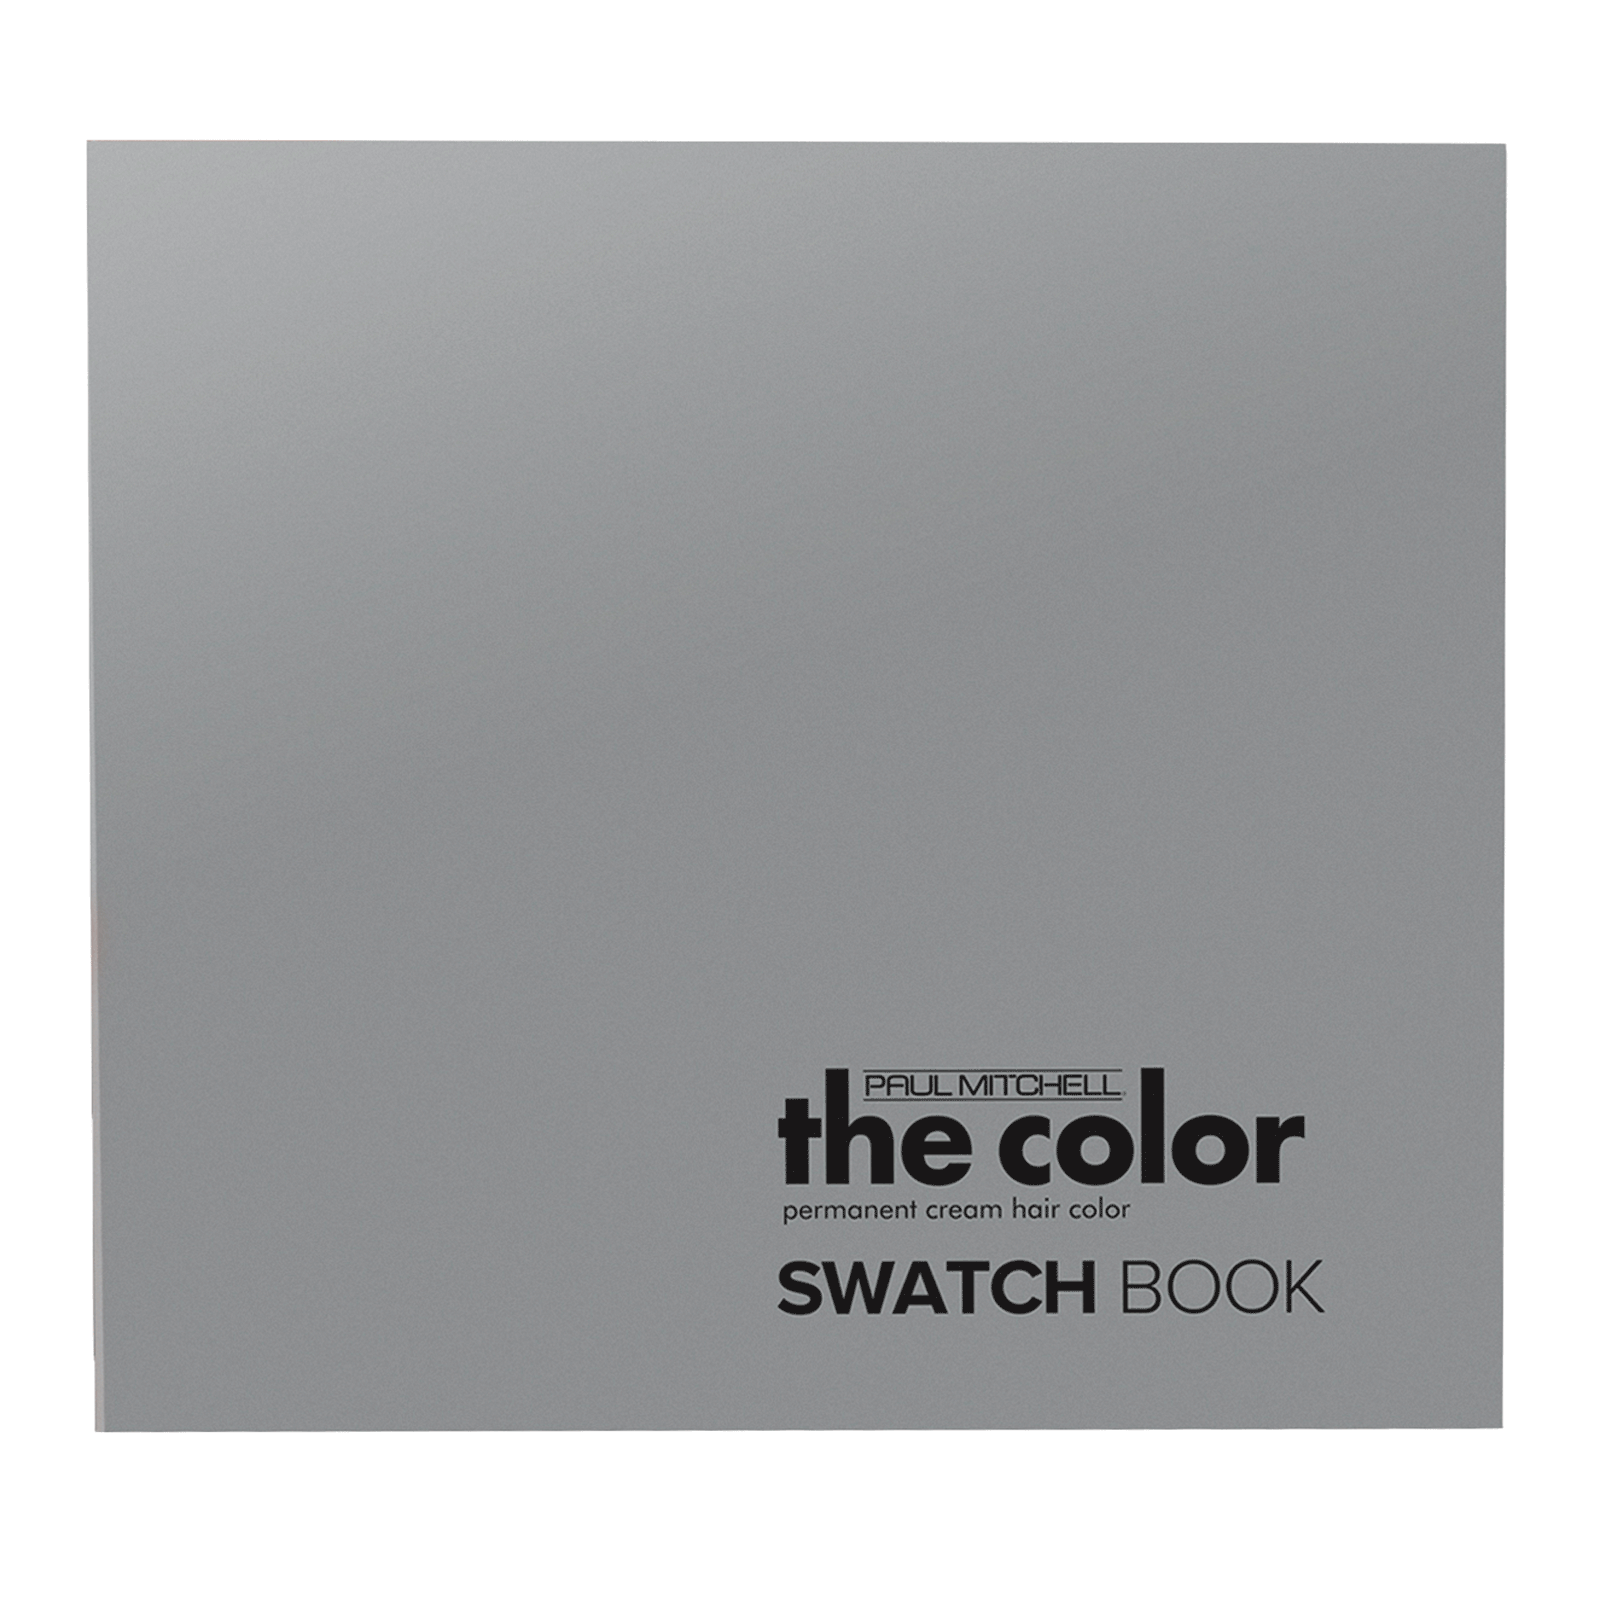 the color swatch book - Color Swatch Book